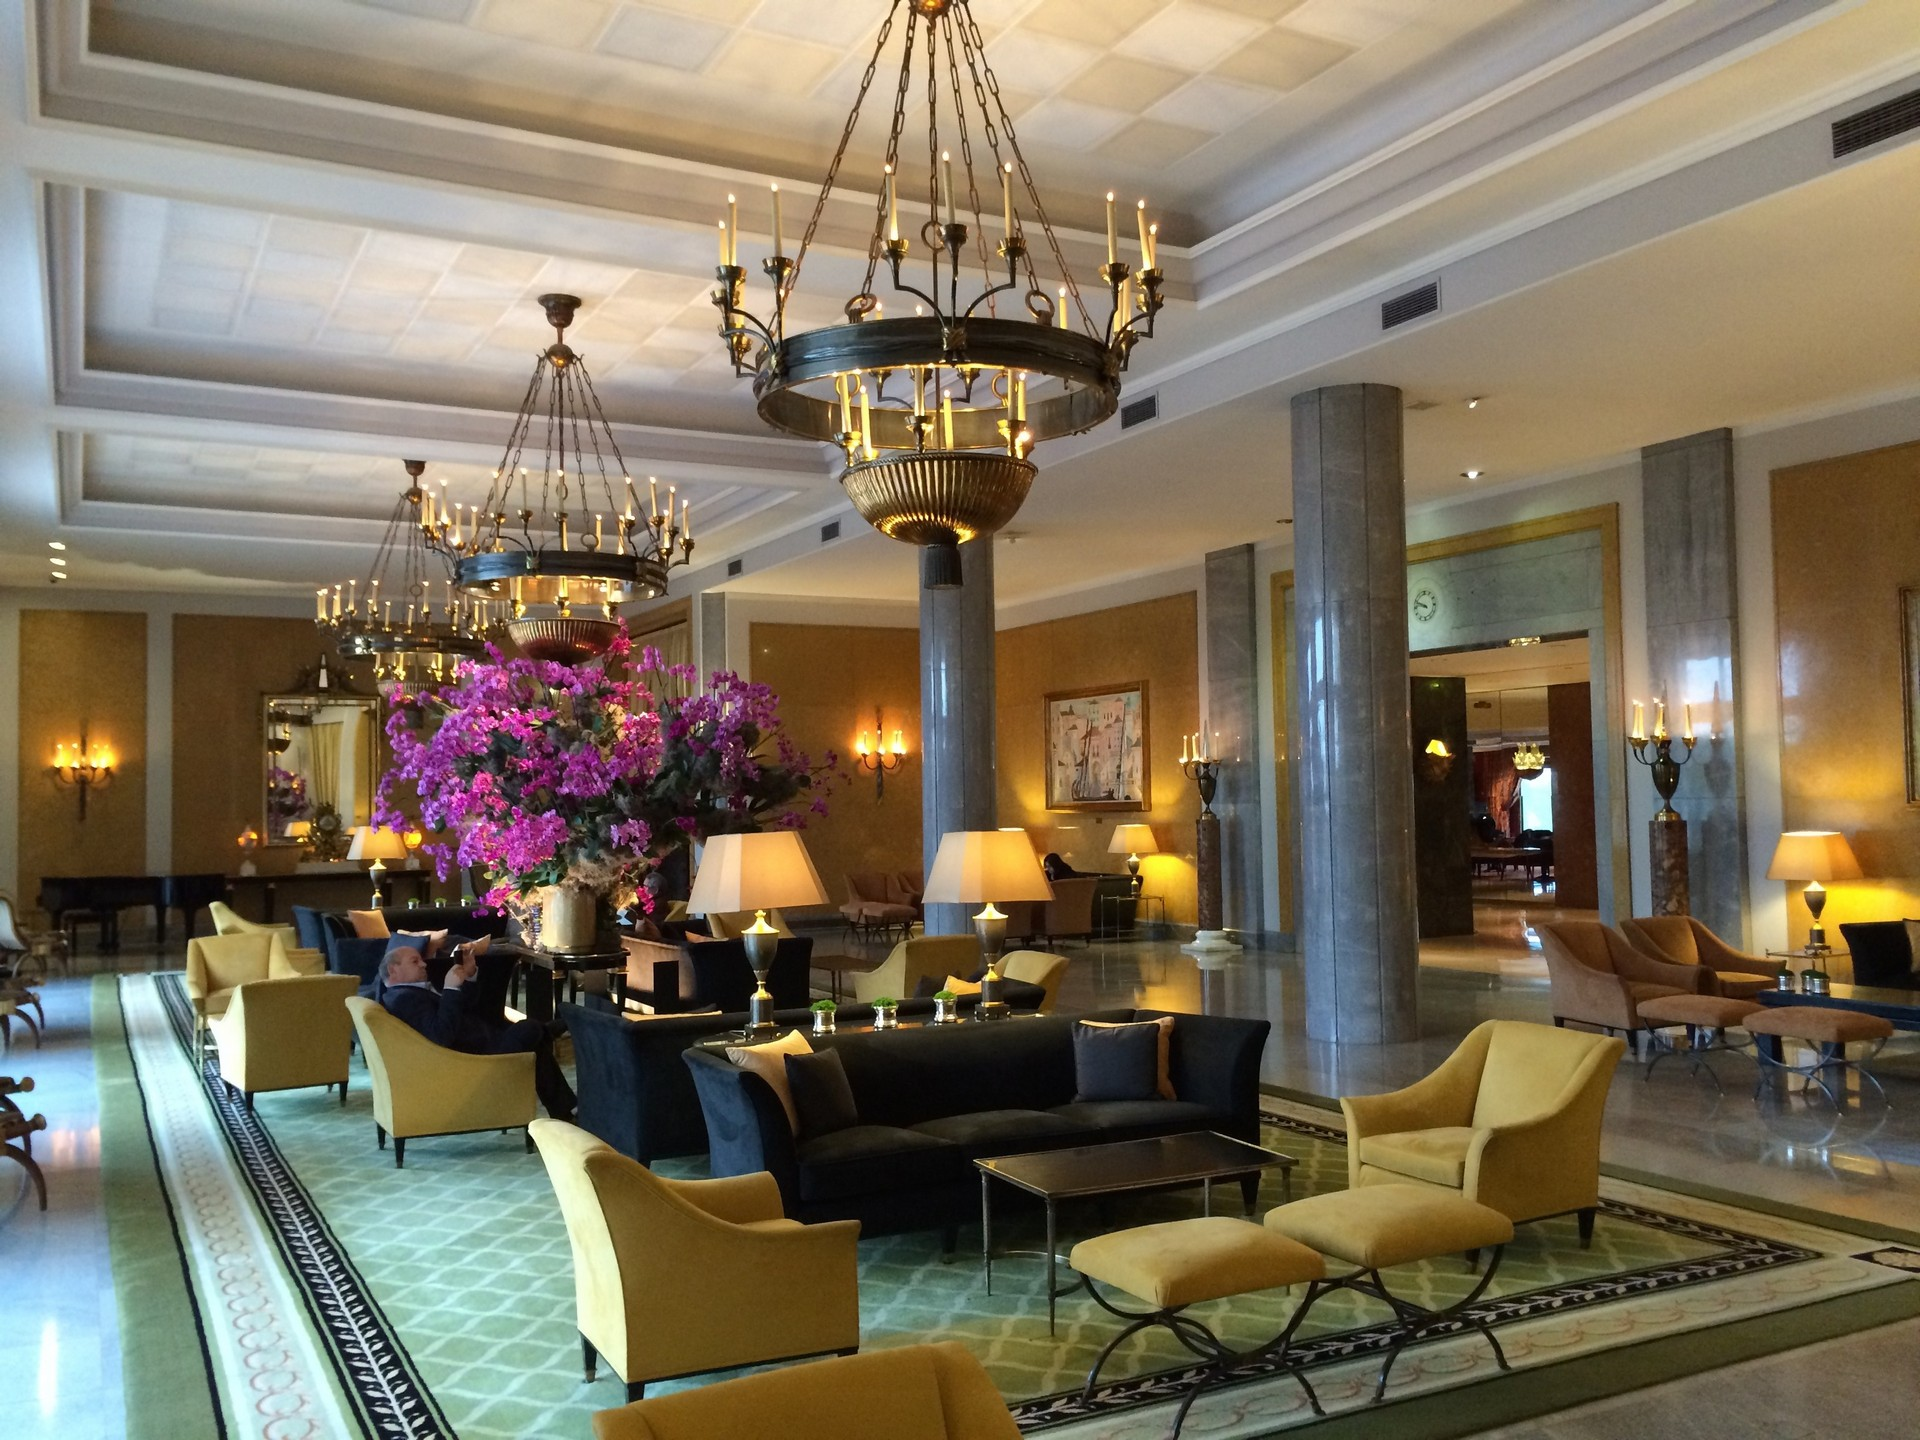 Four Seasons Hotel Ritz luxury hotels Luxury Hotels To Discover in Lisbon Four Seasons Hotel Ritz 4